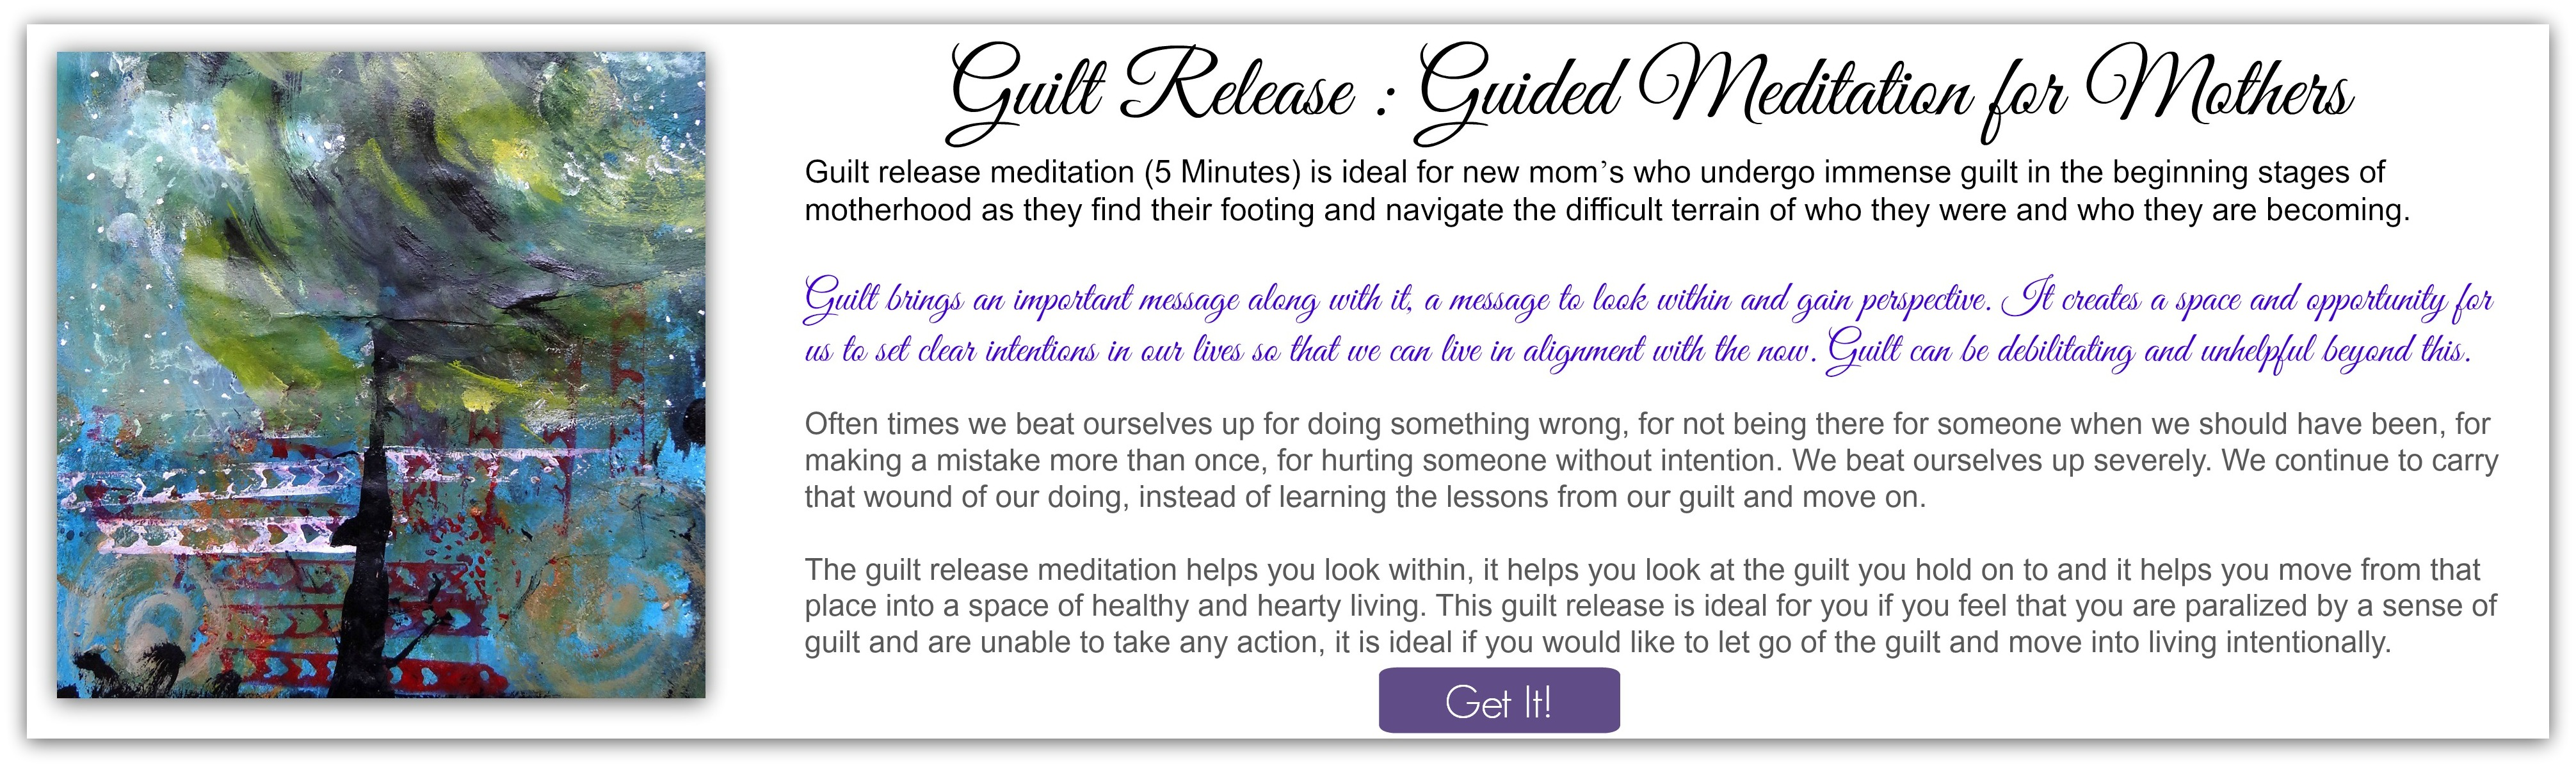 Guilt Release Meditation for Mothers